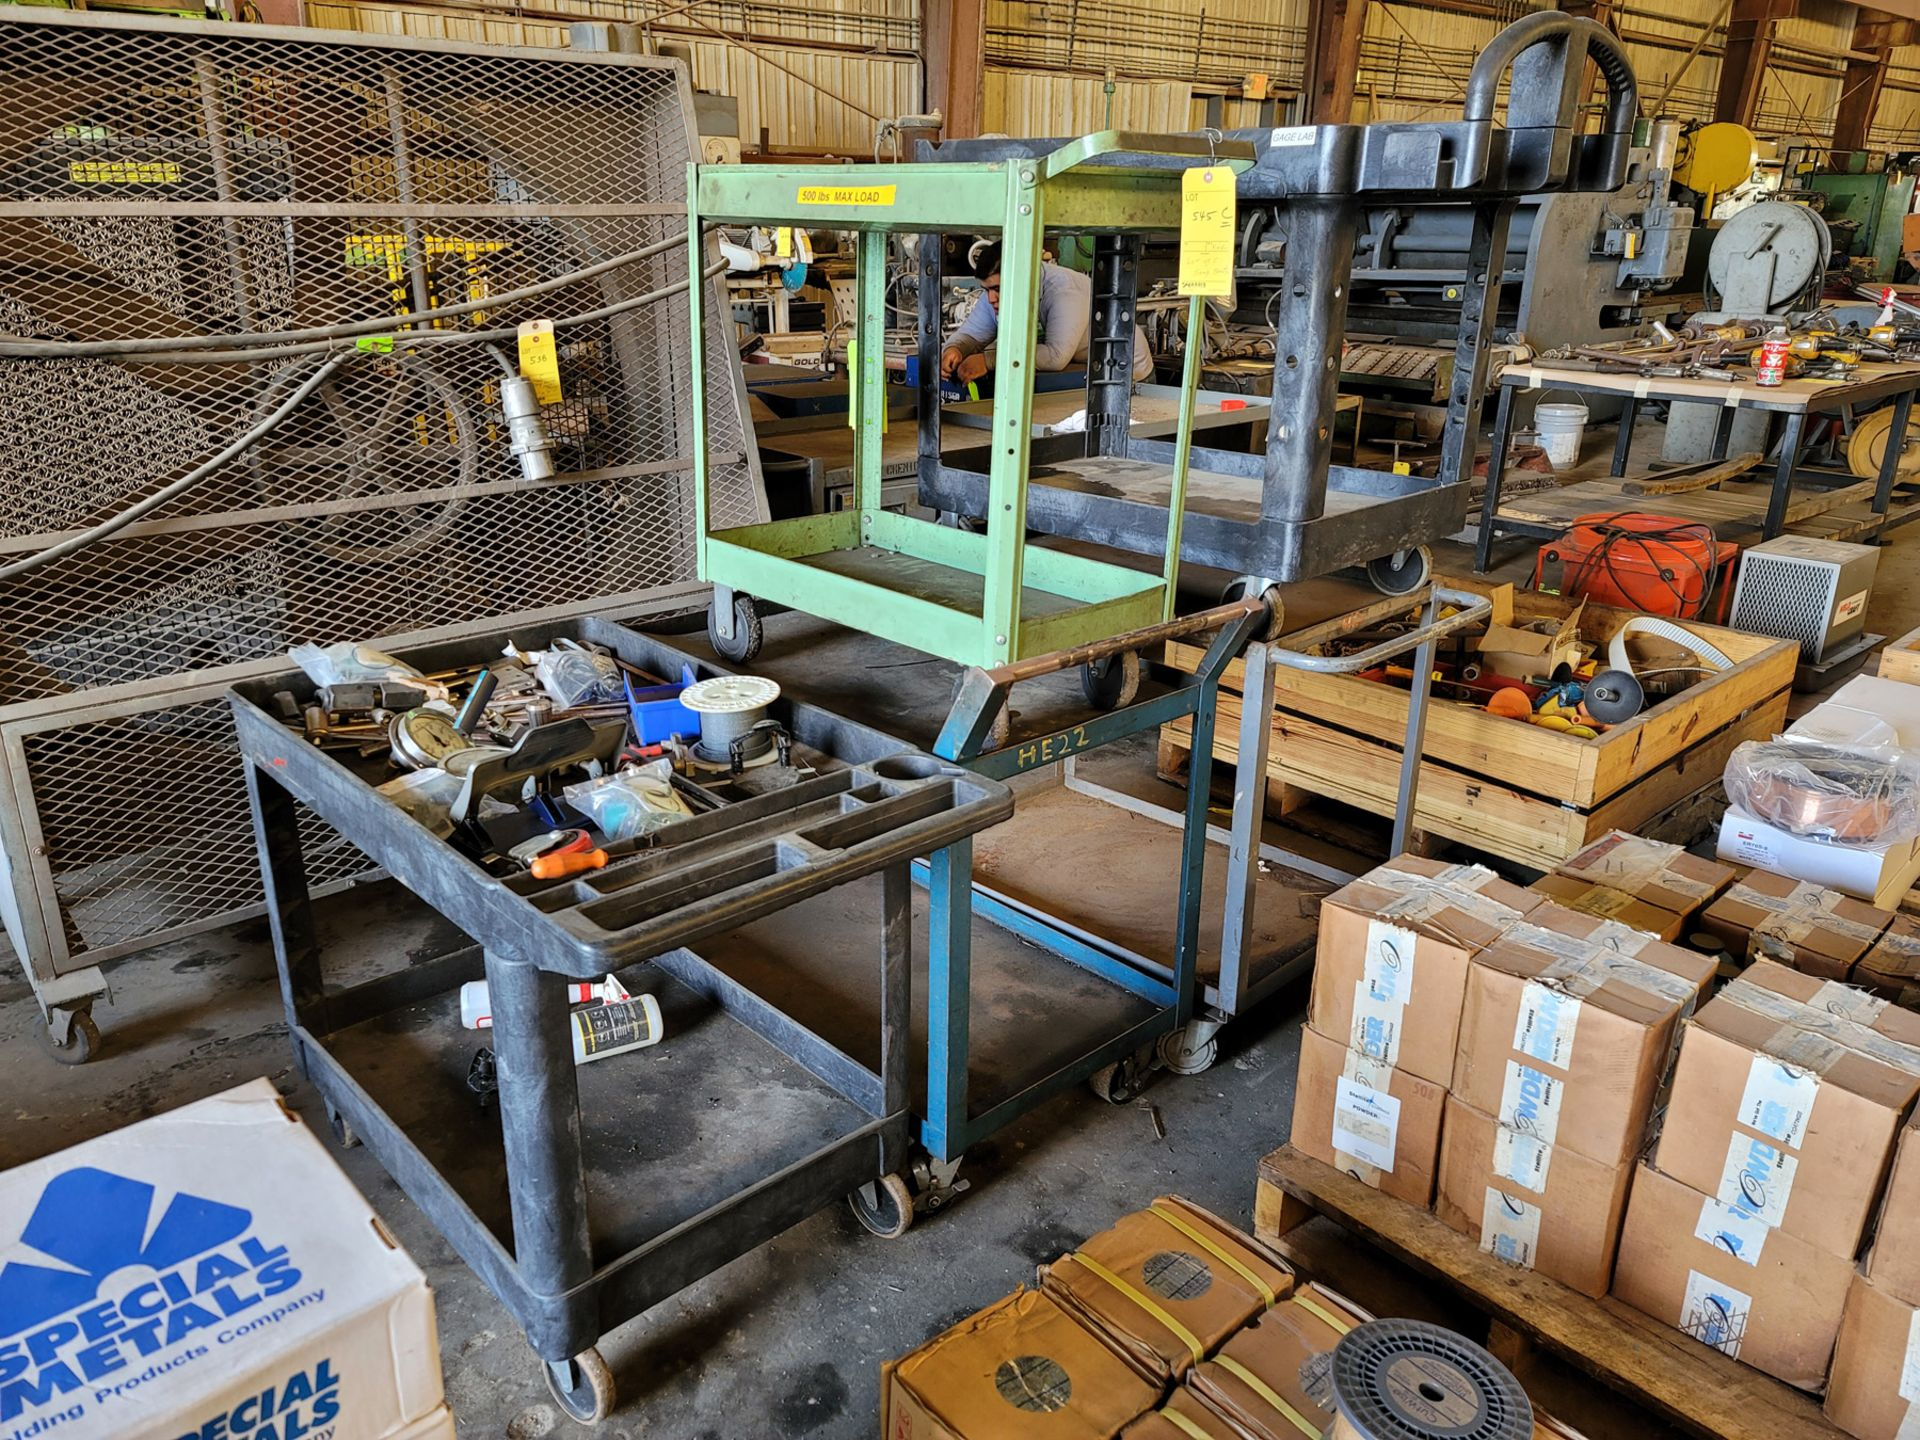 Lot of 5: Shop Carts - Image 2 of 4